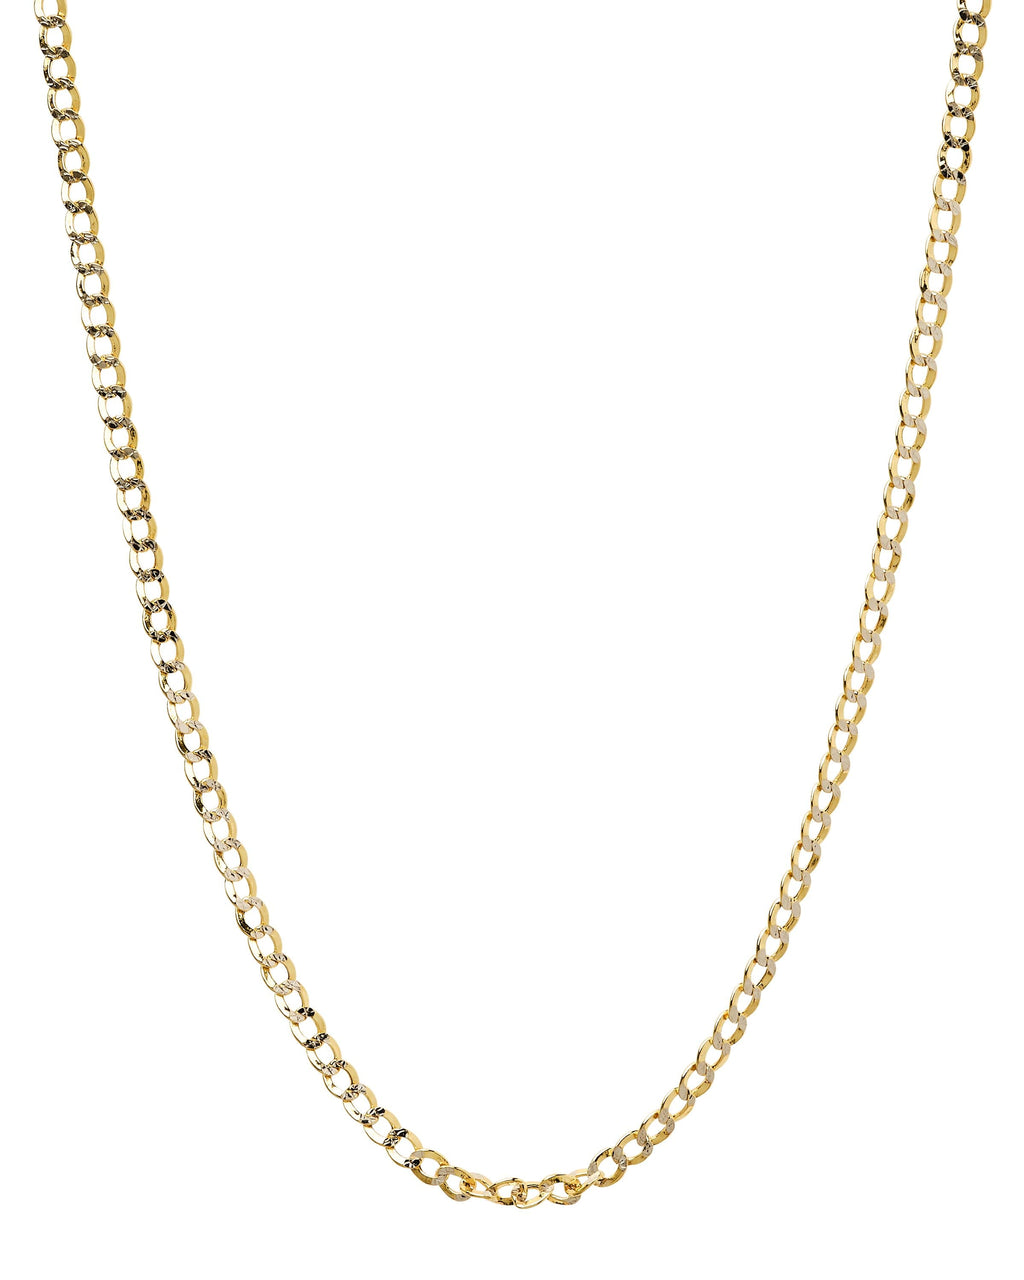 "20"" 14k Curb Hollow Yellow Gold Chain"